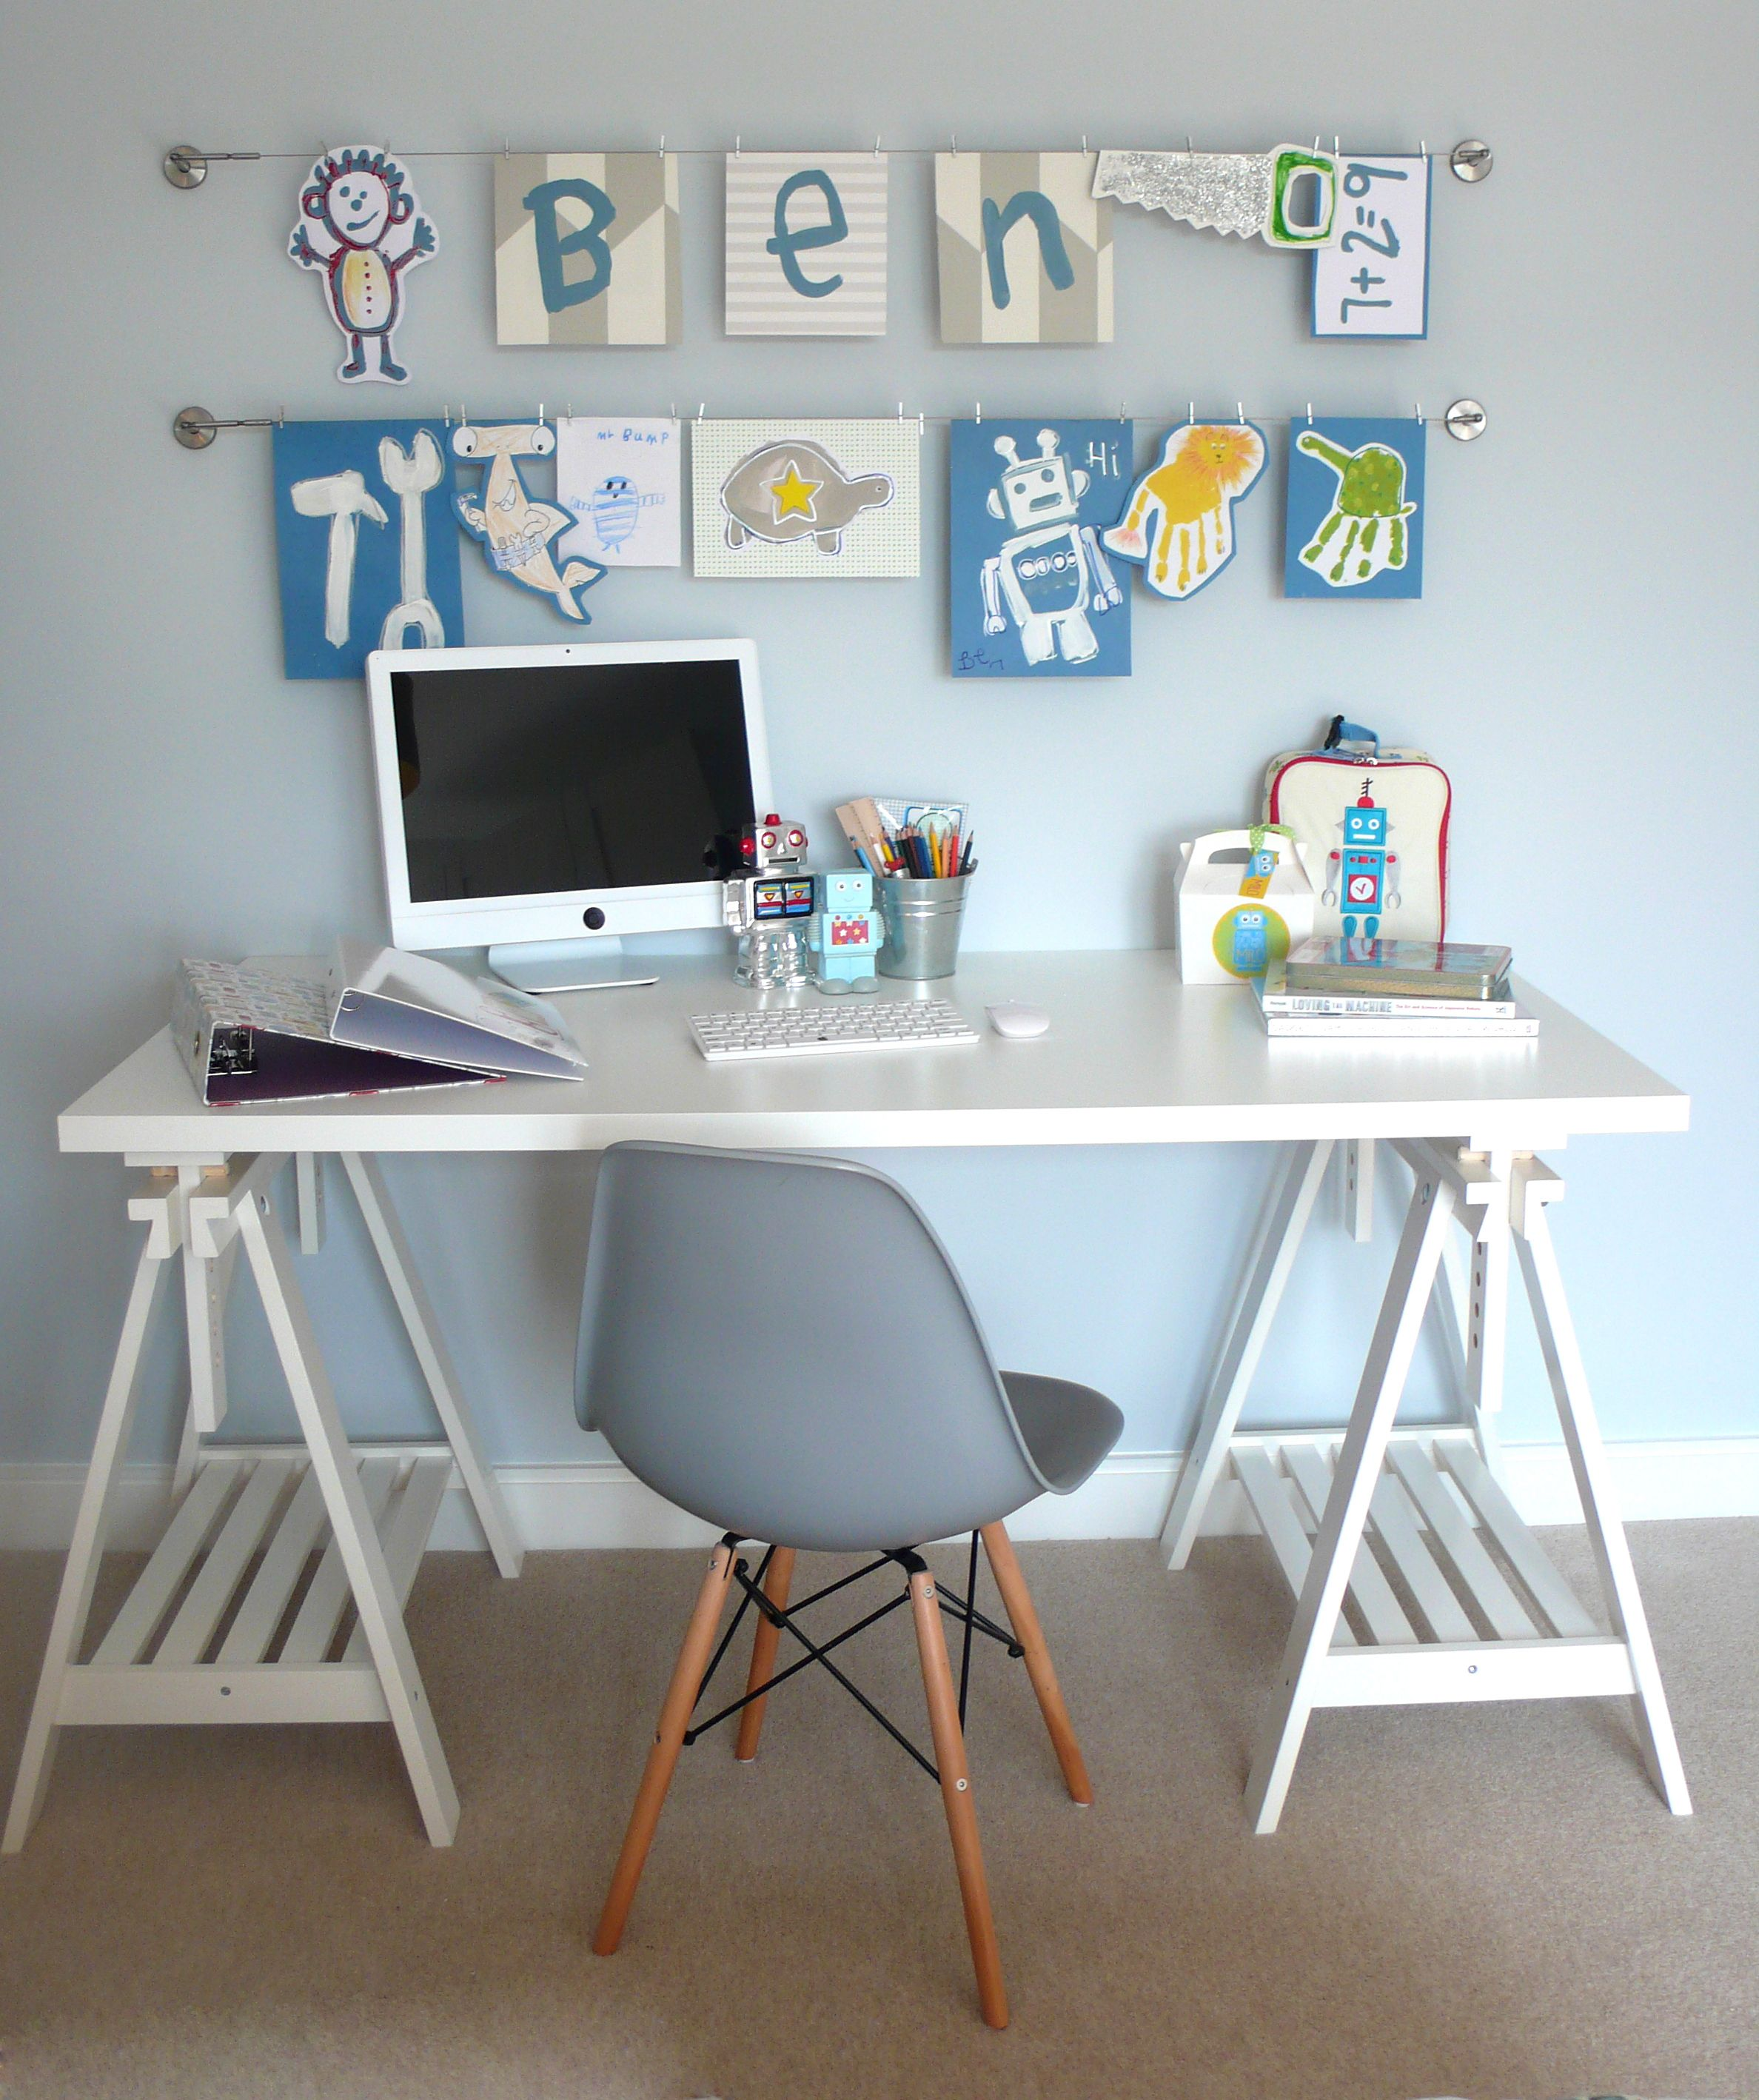 Kids artwork on wires over desk. Artspace Interior Design LTD